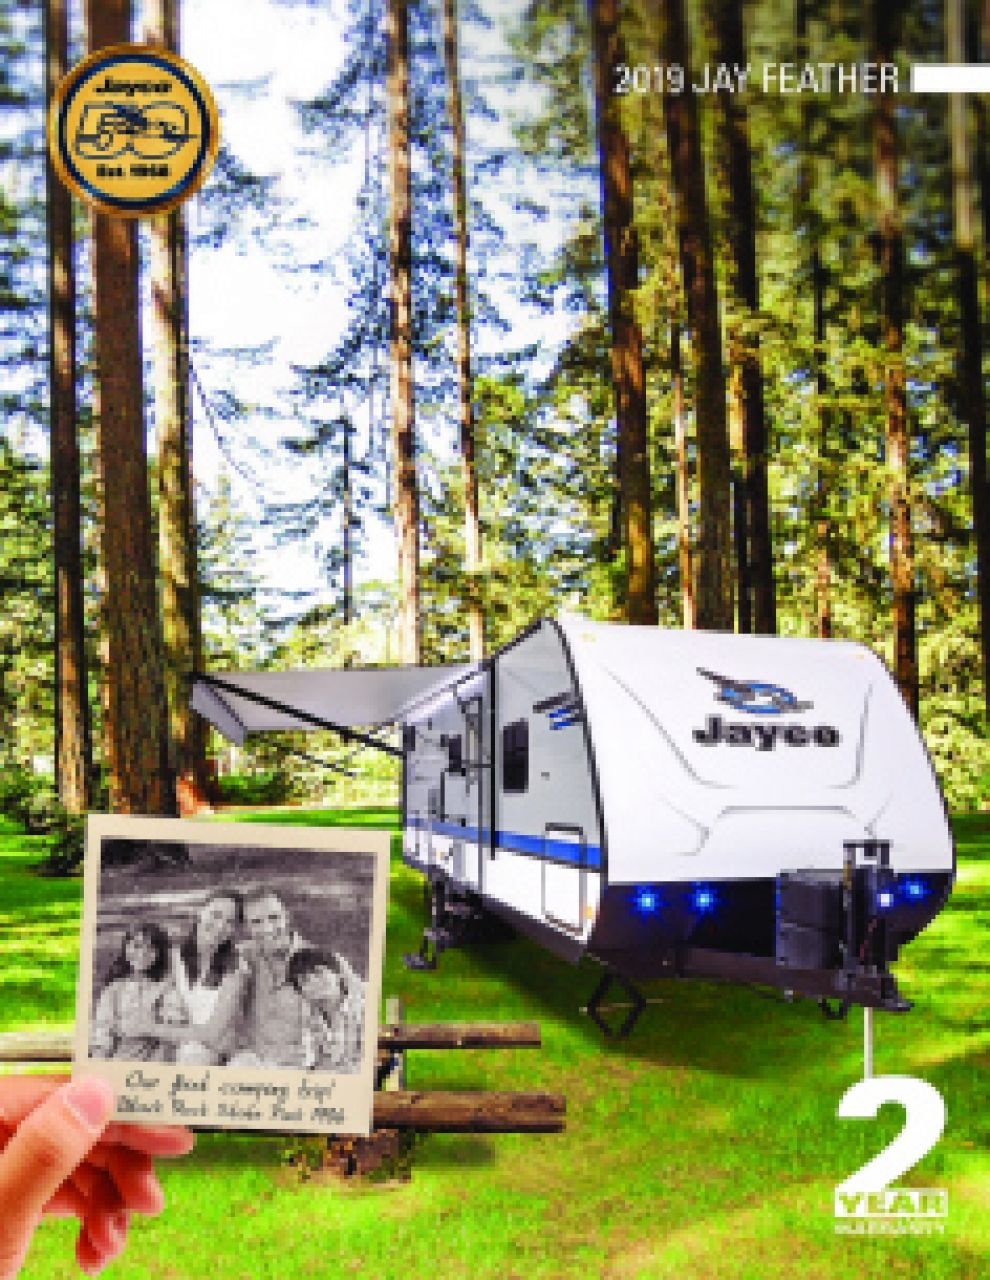 2019 Jayco Jay Feather RV Brochure Cover